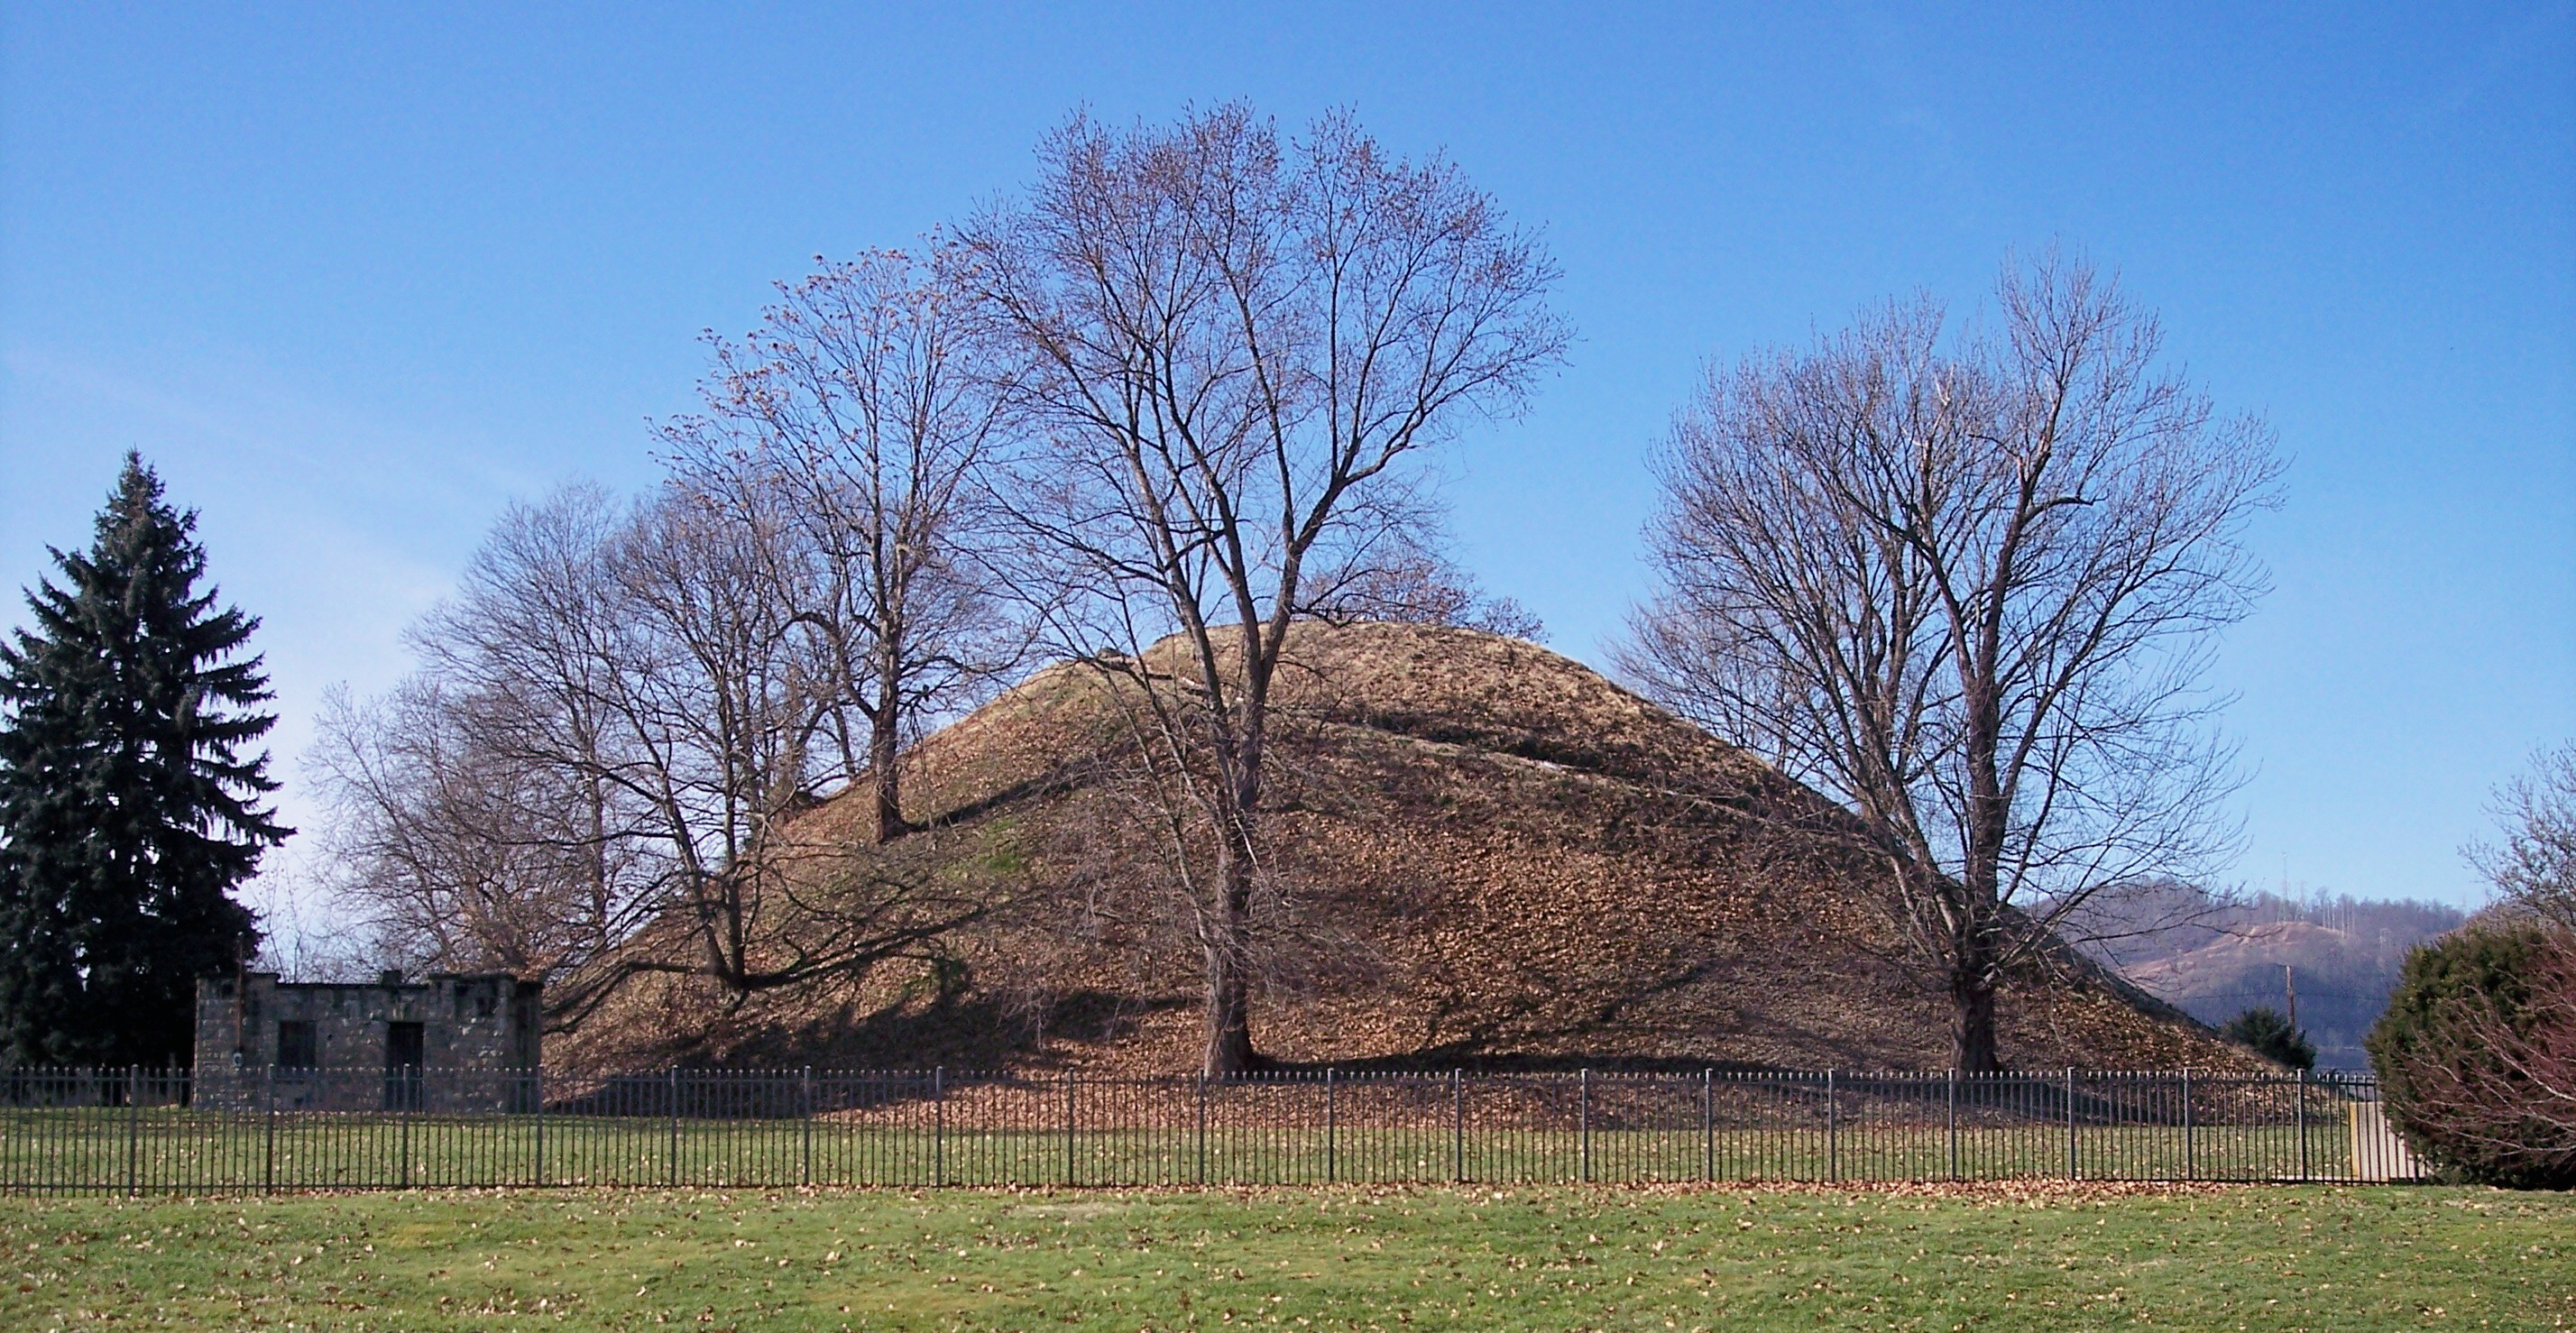 http://upload.wikimedia.org/wikipedia/commons/e/ef/Grave_Creek_Mound.jpg